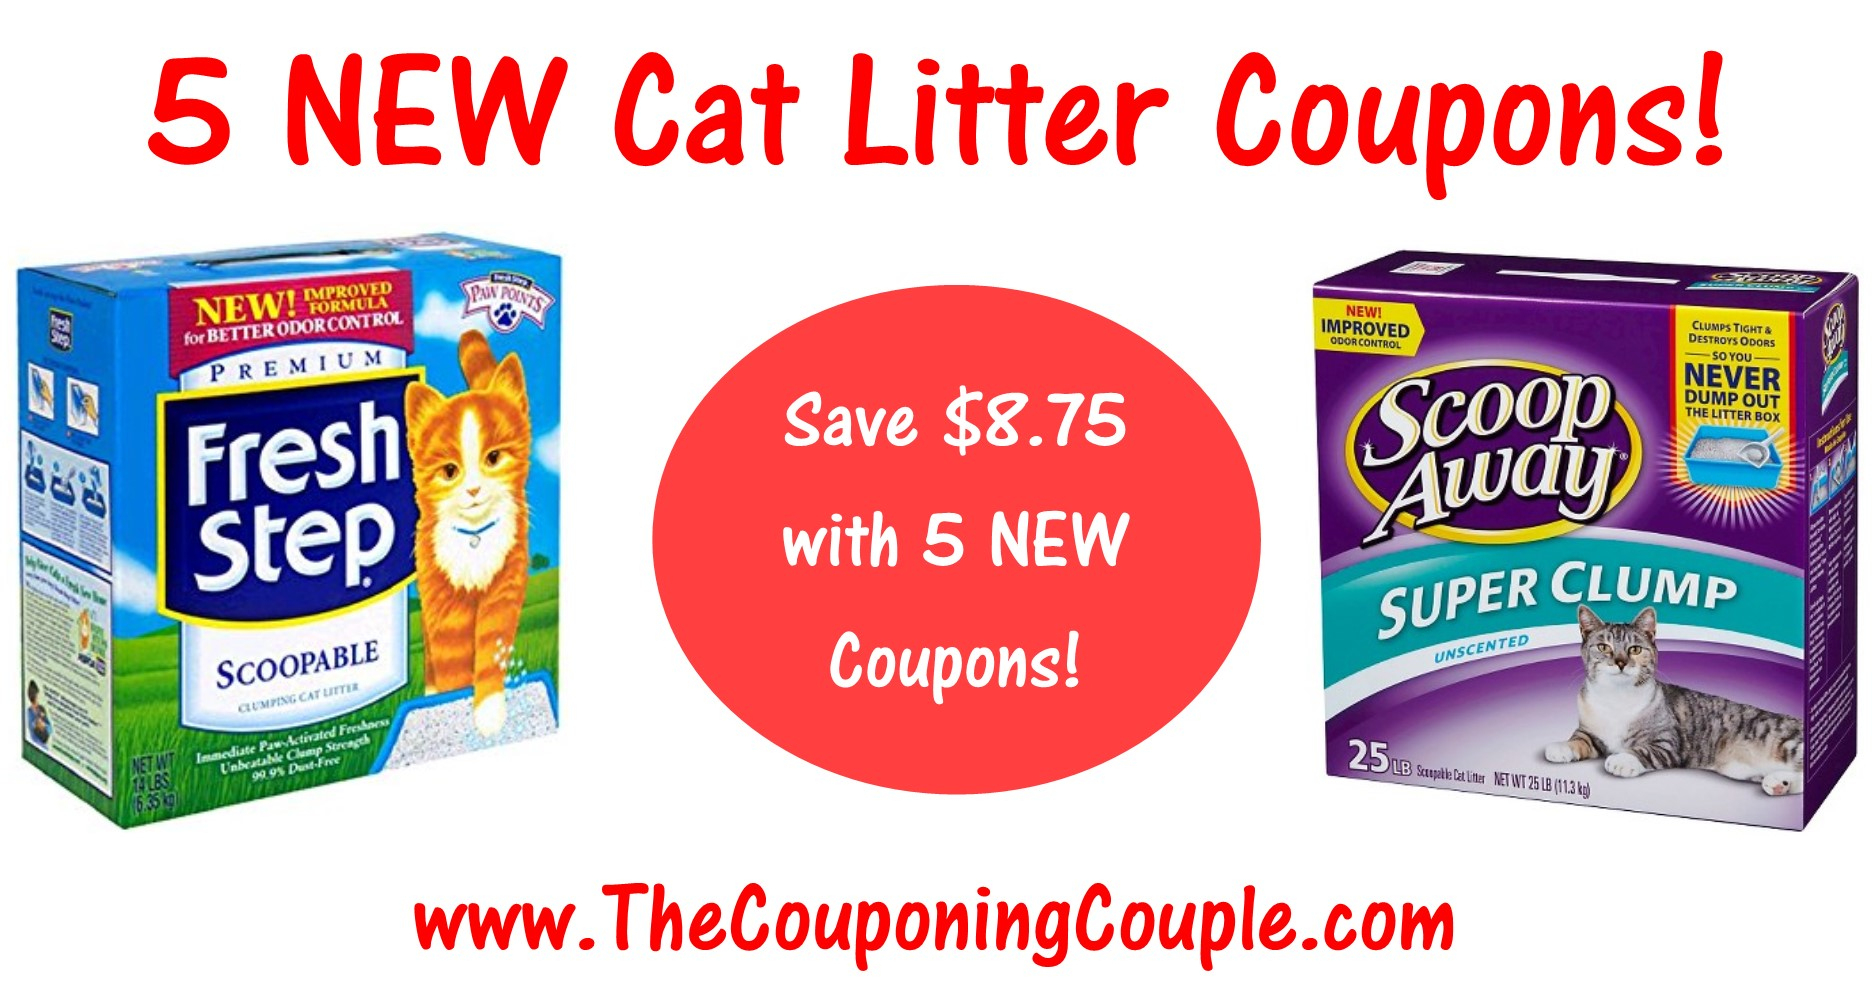 5 New Cat Litter Coupons ~ Save $8.75 On Fresh Step & Scoop Away! - Free Printable Scoop Away Coupons